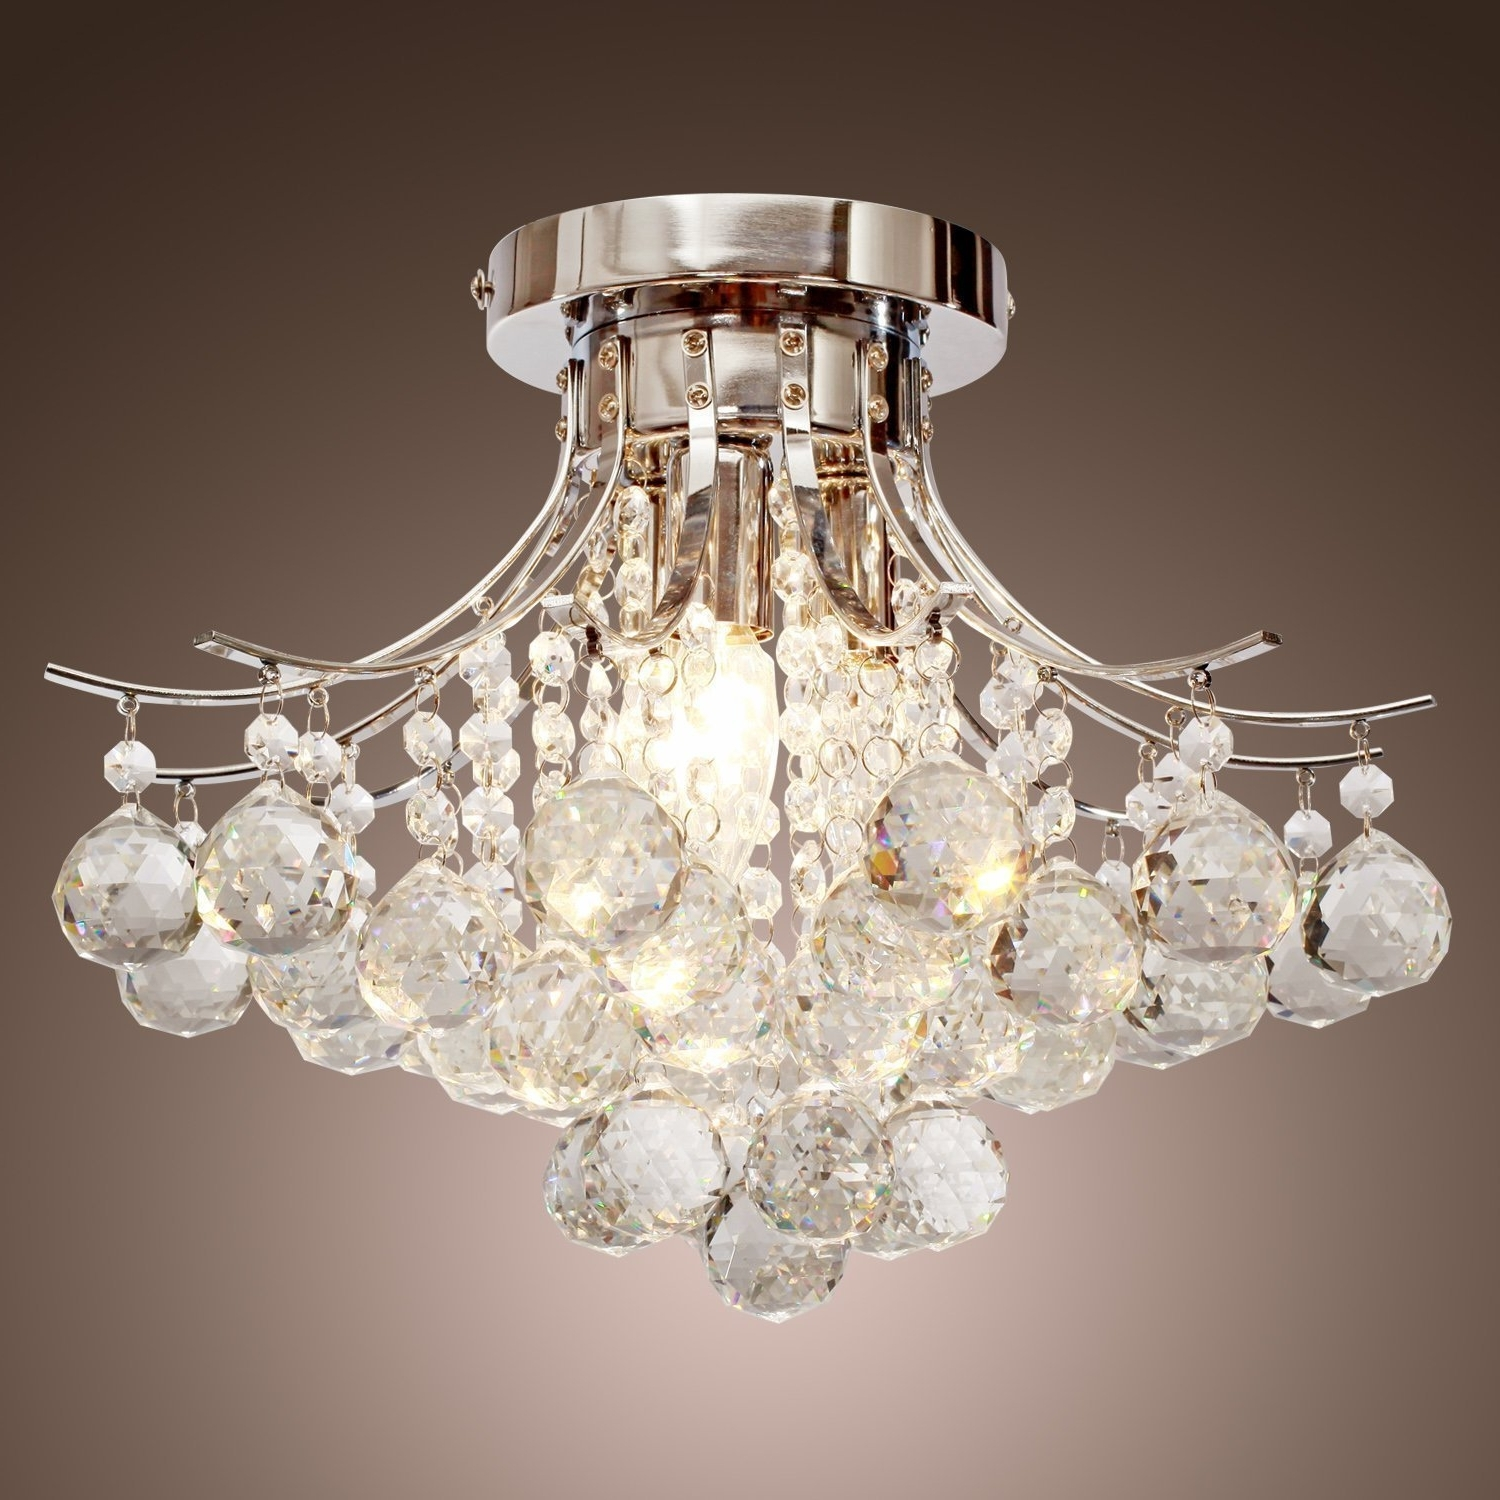 Best And Newest Chandelier For Low Ceiling Throughout Light : Living Room Ceiling Lights Close To Flush Mount Lighting (View 2 of 15)